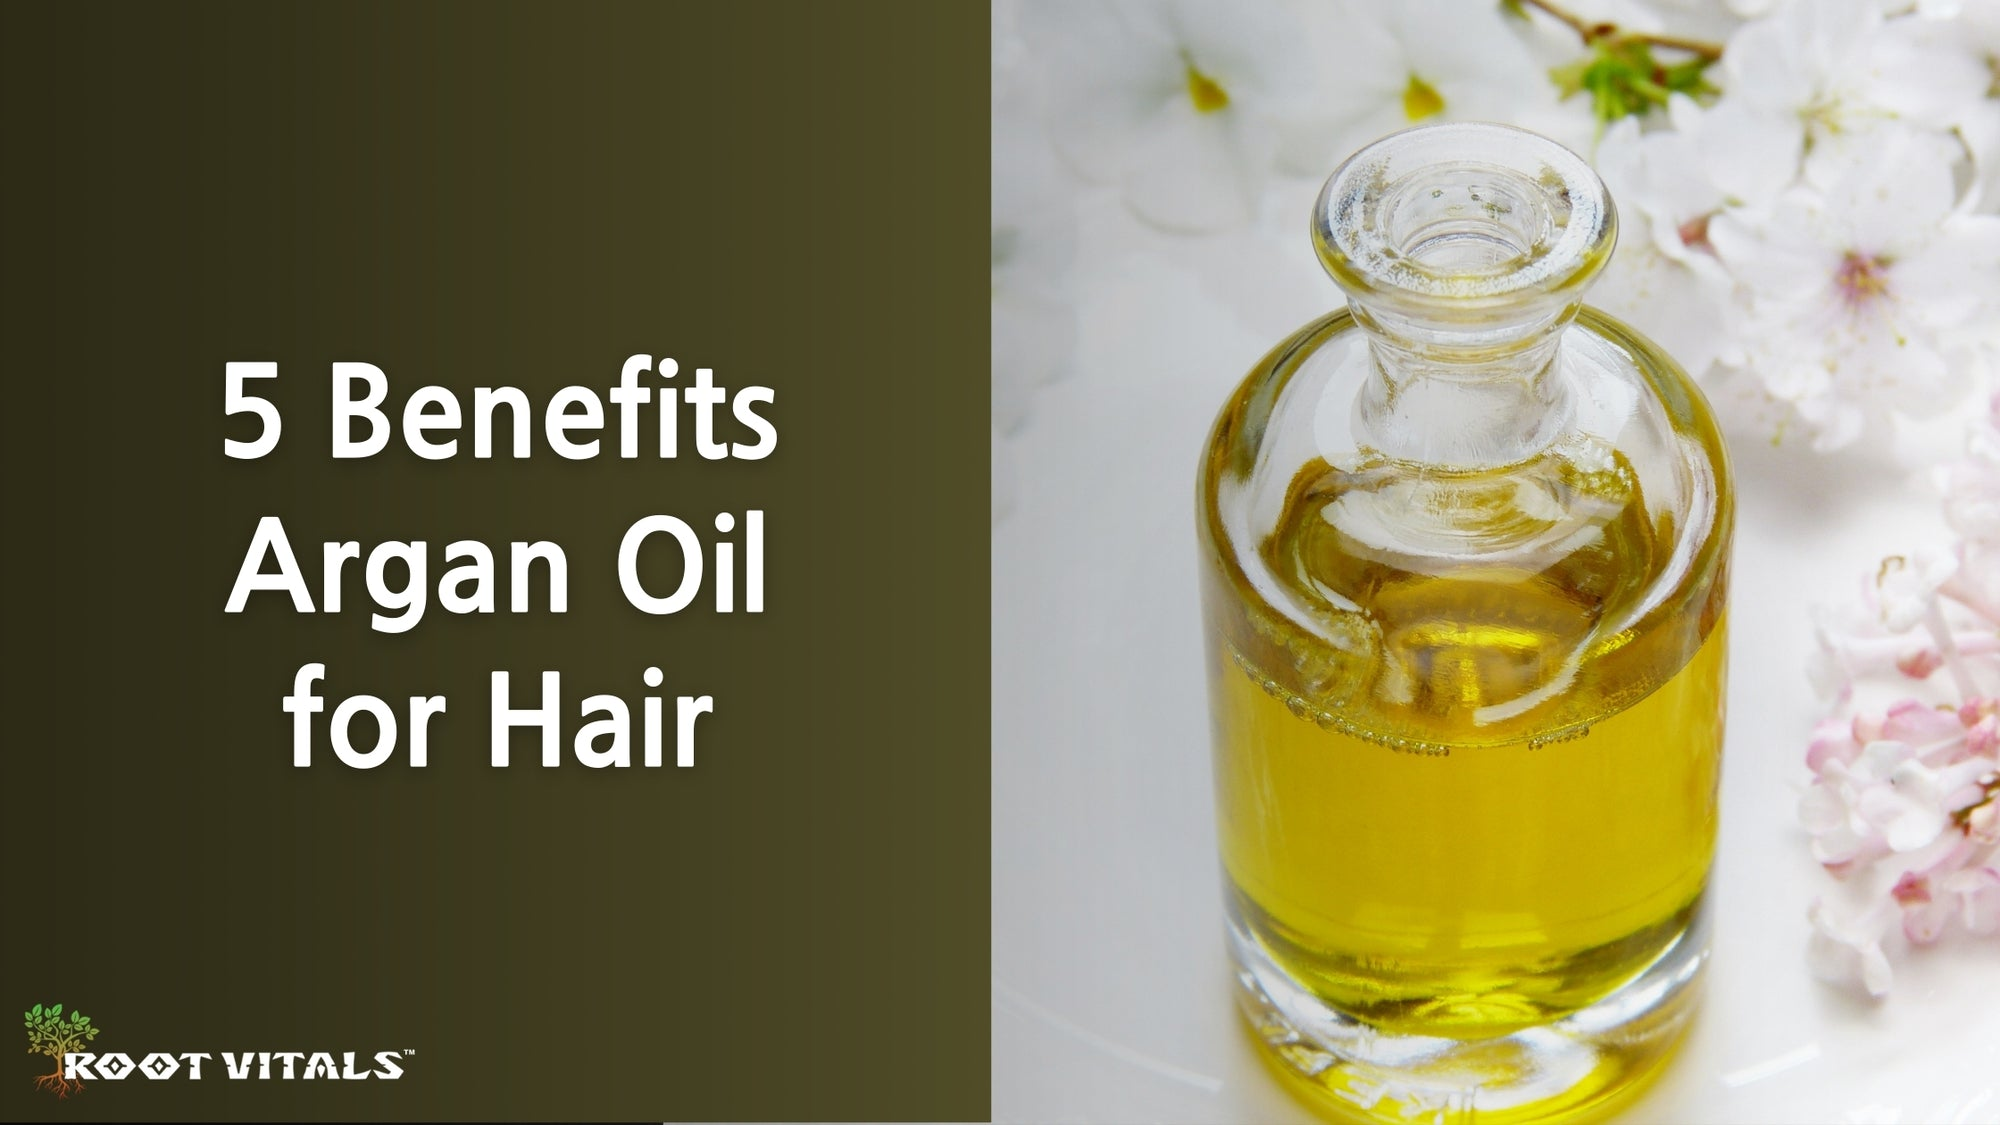 Argan oil for hair benefits to help hair grow strong and healthy